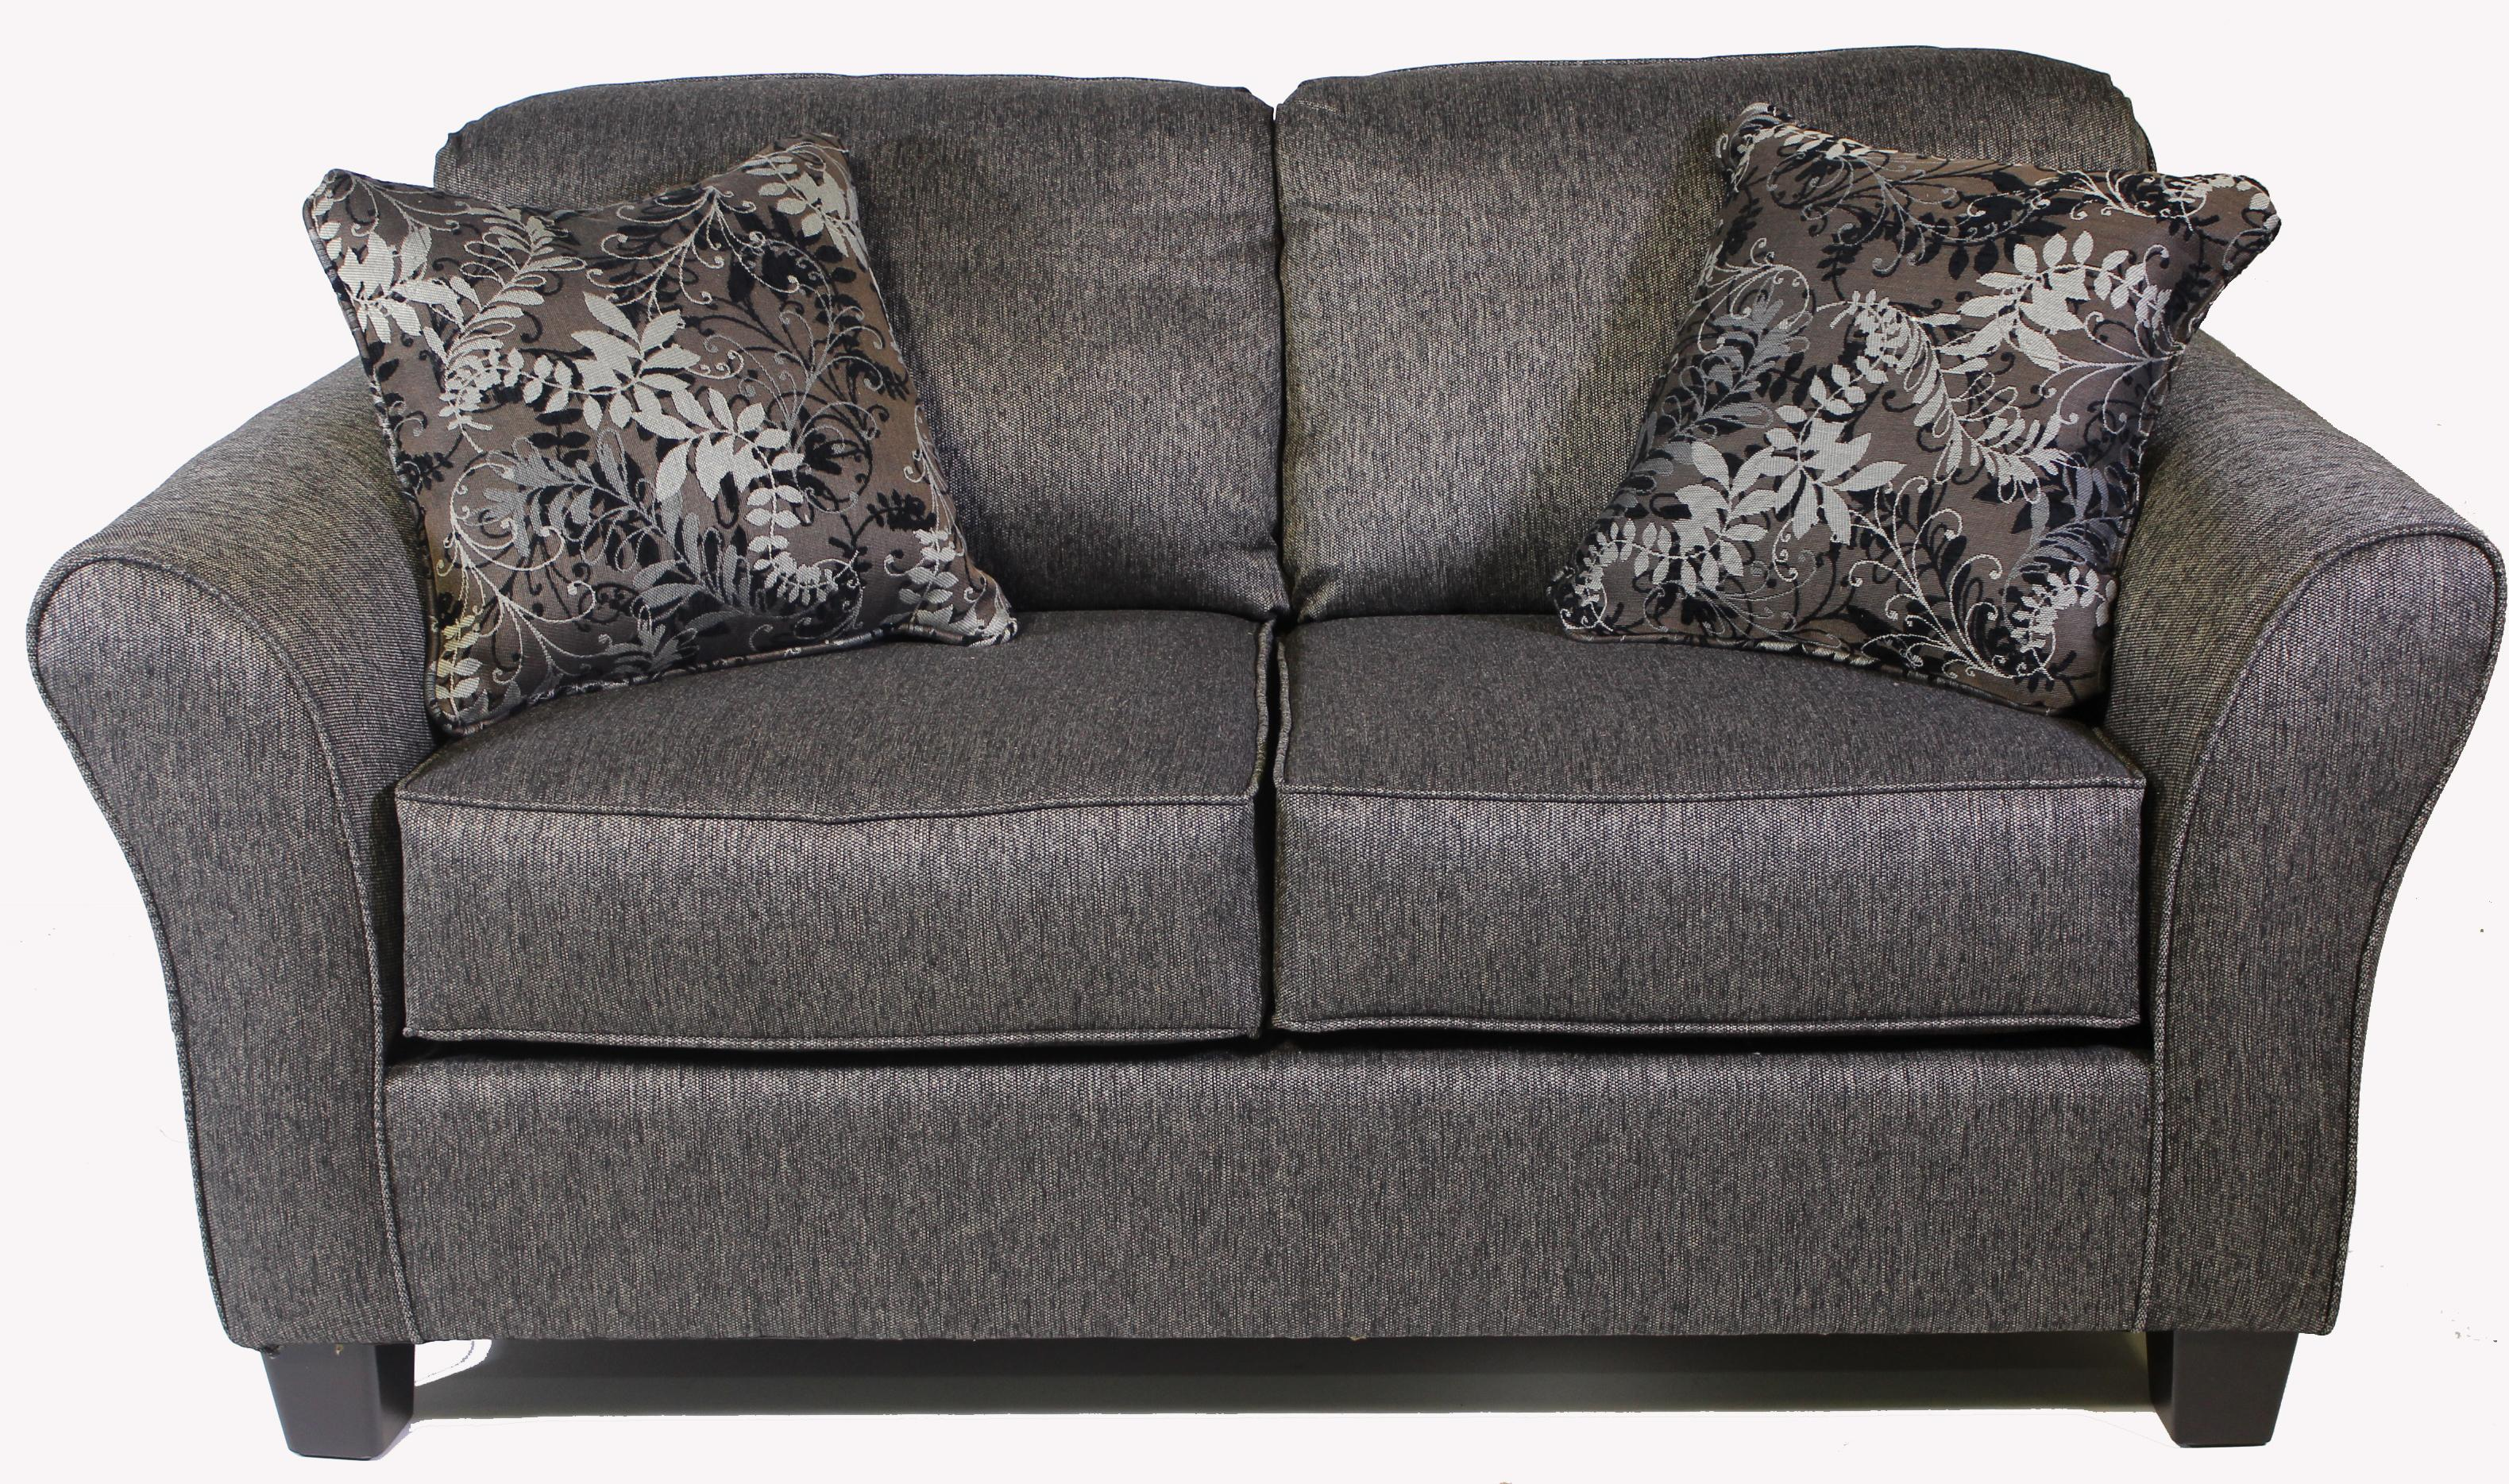 Serta Upholstery by Hughes 4600 Loveseat - Item Number: 4600 Loveseat